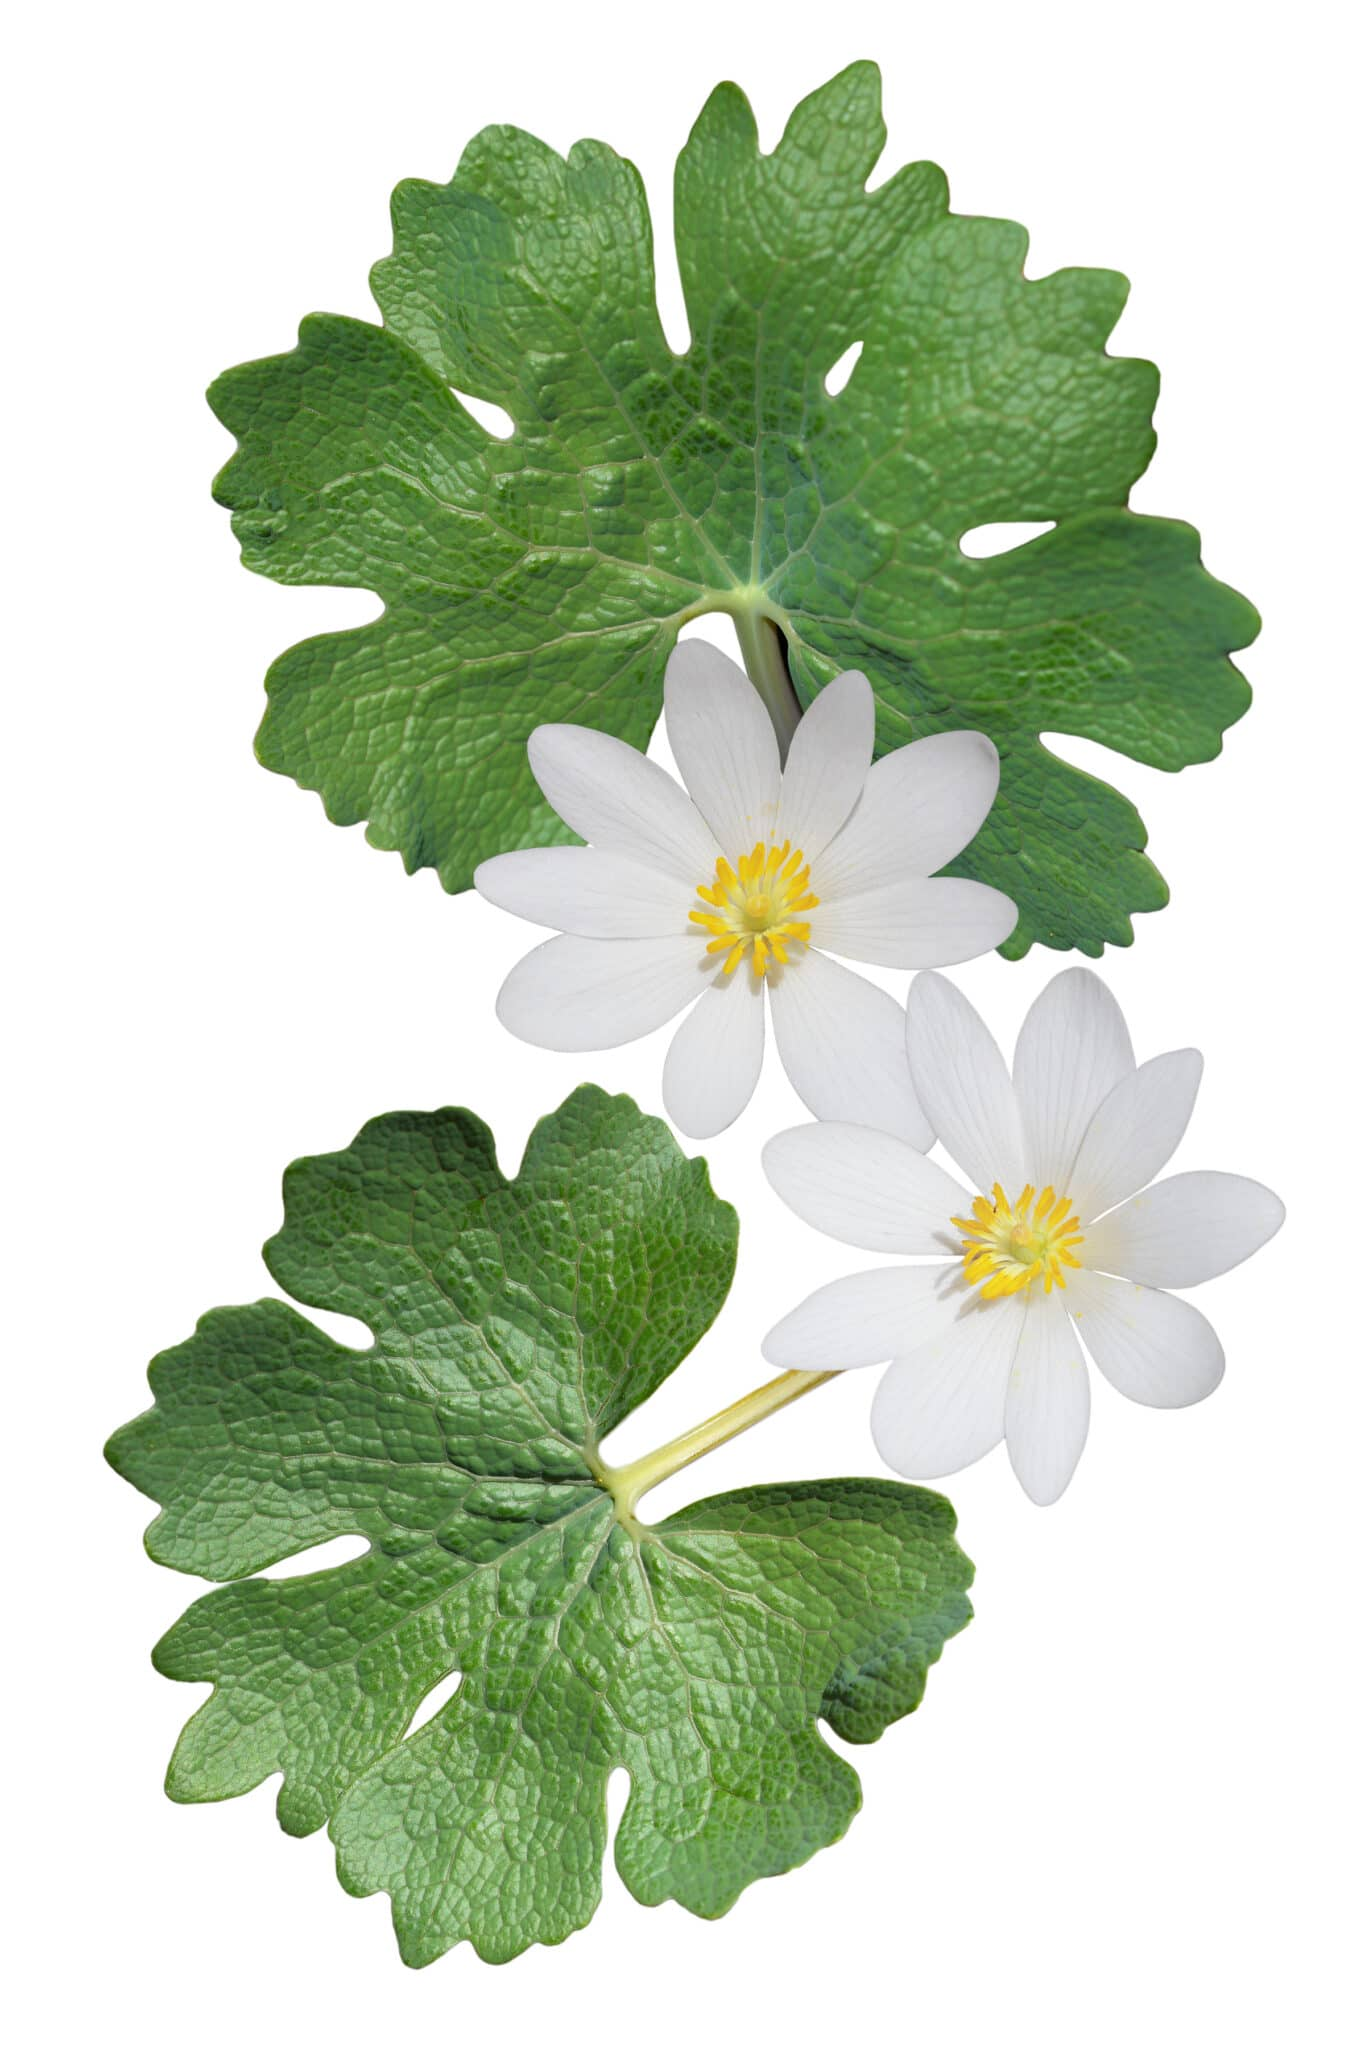 Bloodroot blooms and leaves on a white background.